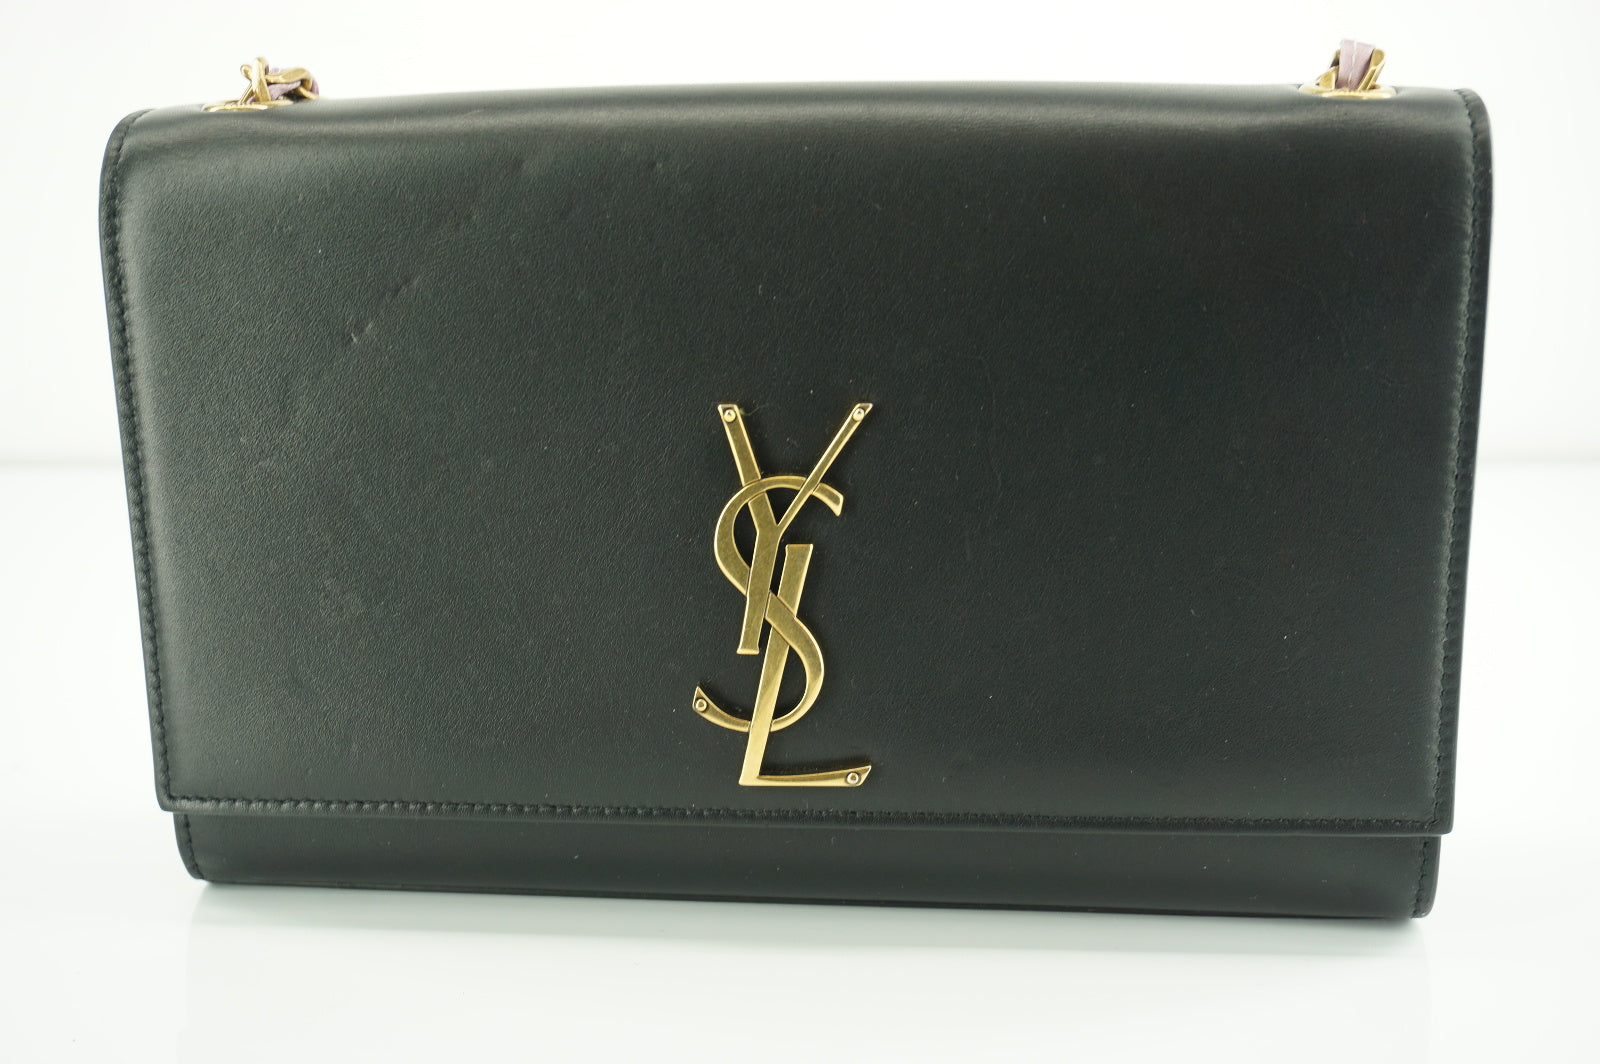 Saint Laurent Black Kate Medium Monogram Chain Leather Bag $2190 YSL Logo